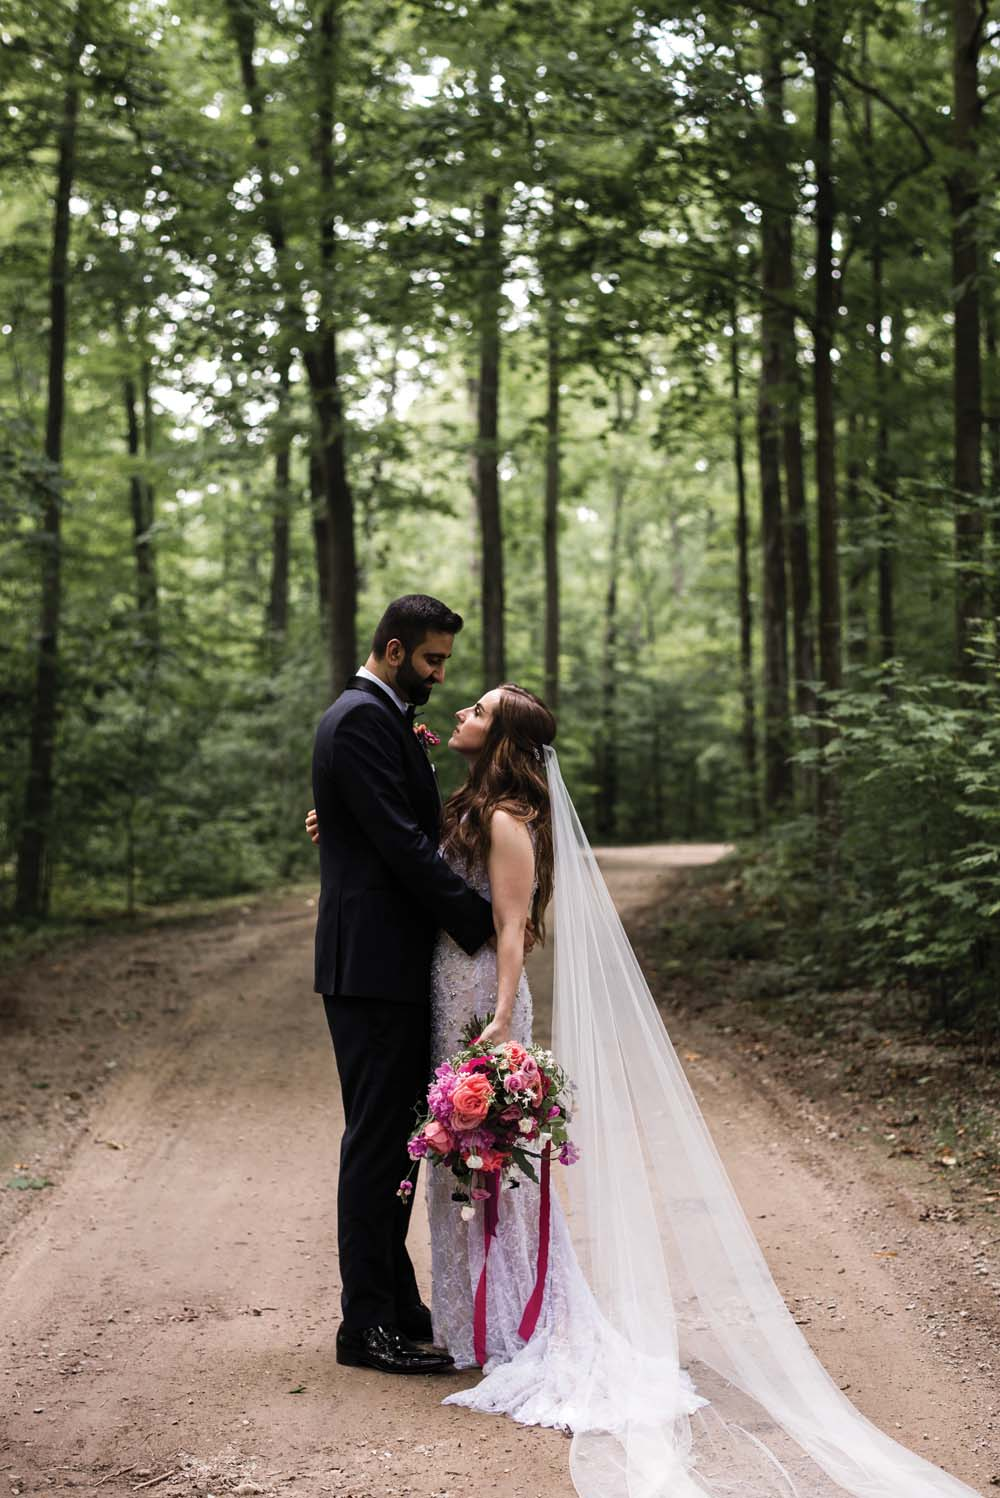 A Bold and Industrial Chic Wedding in Cambridge, Ontario - Bride and groom